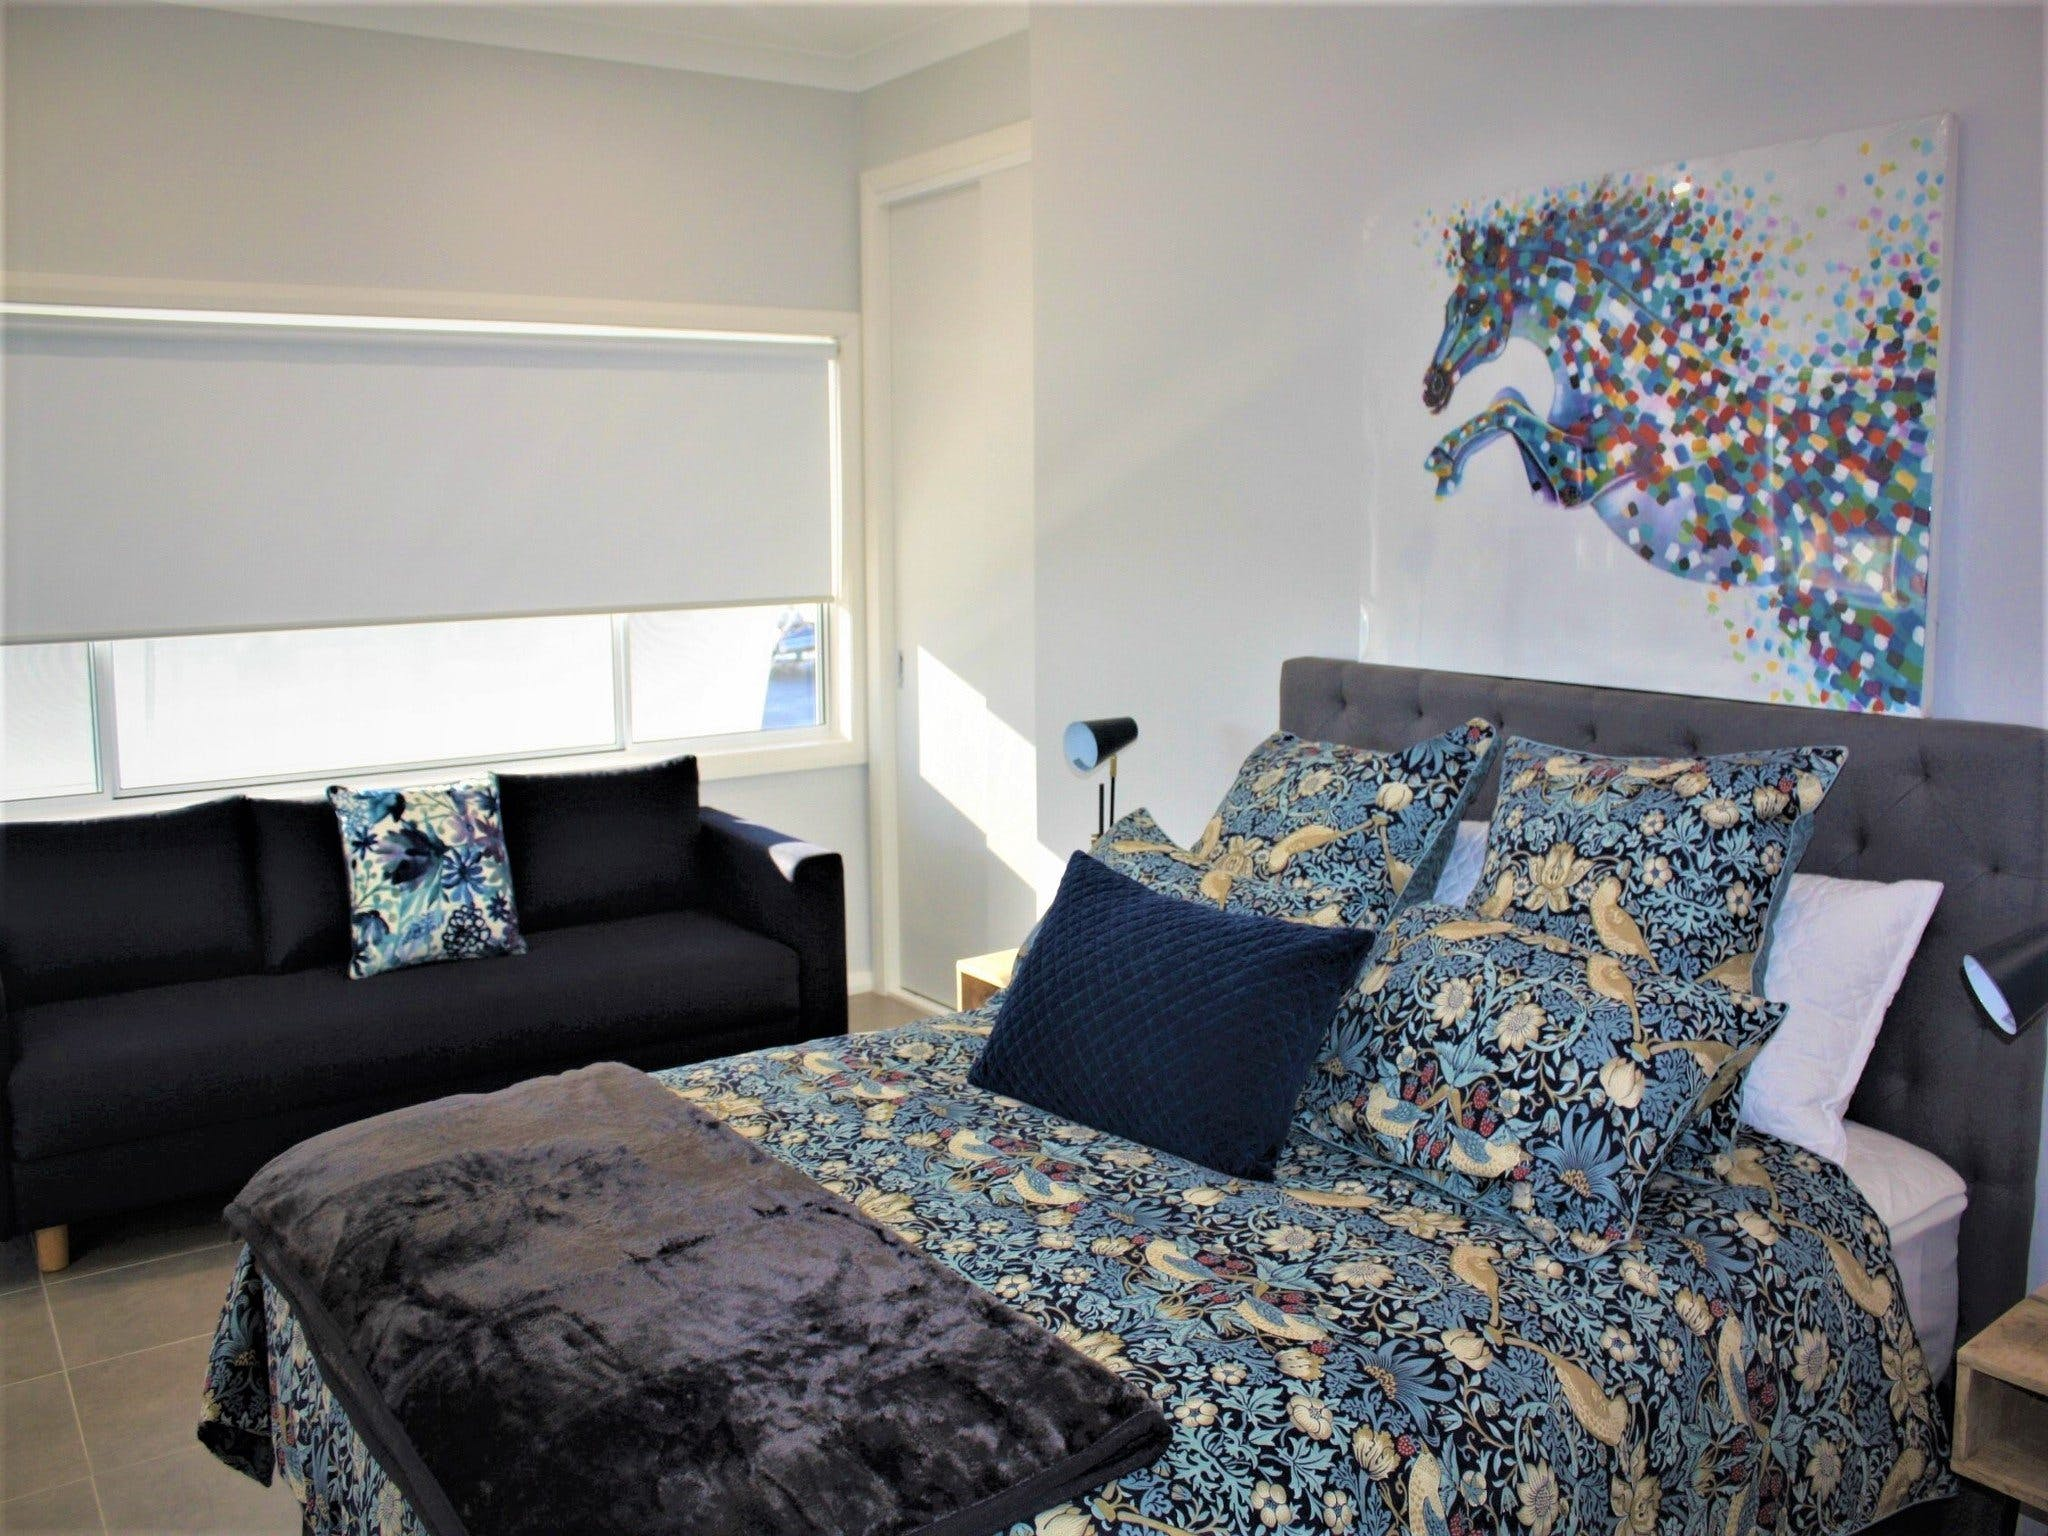 Coolah Shorts - Self Contained Apartments - Wagga Wagga Accommodation